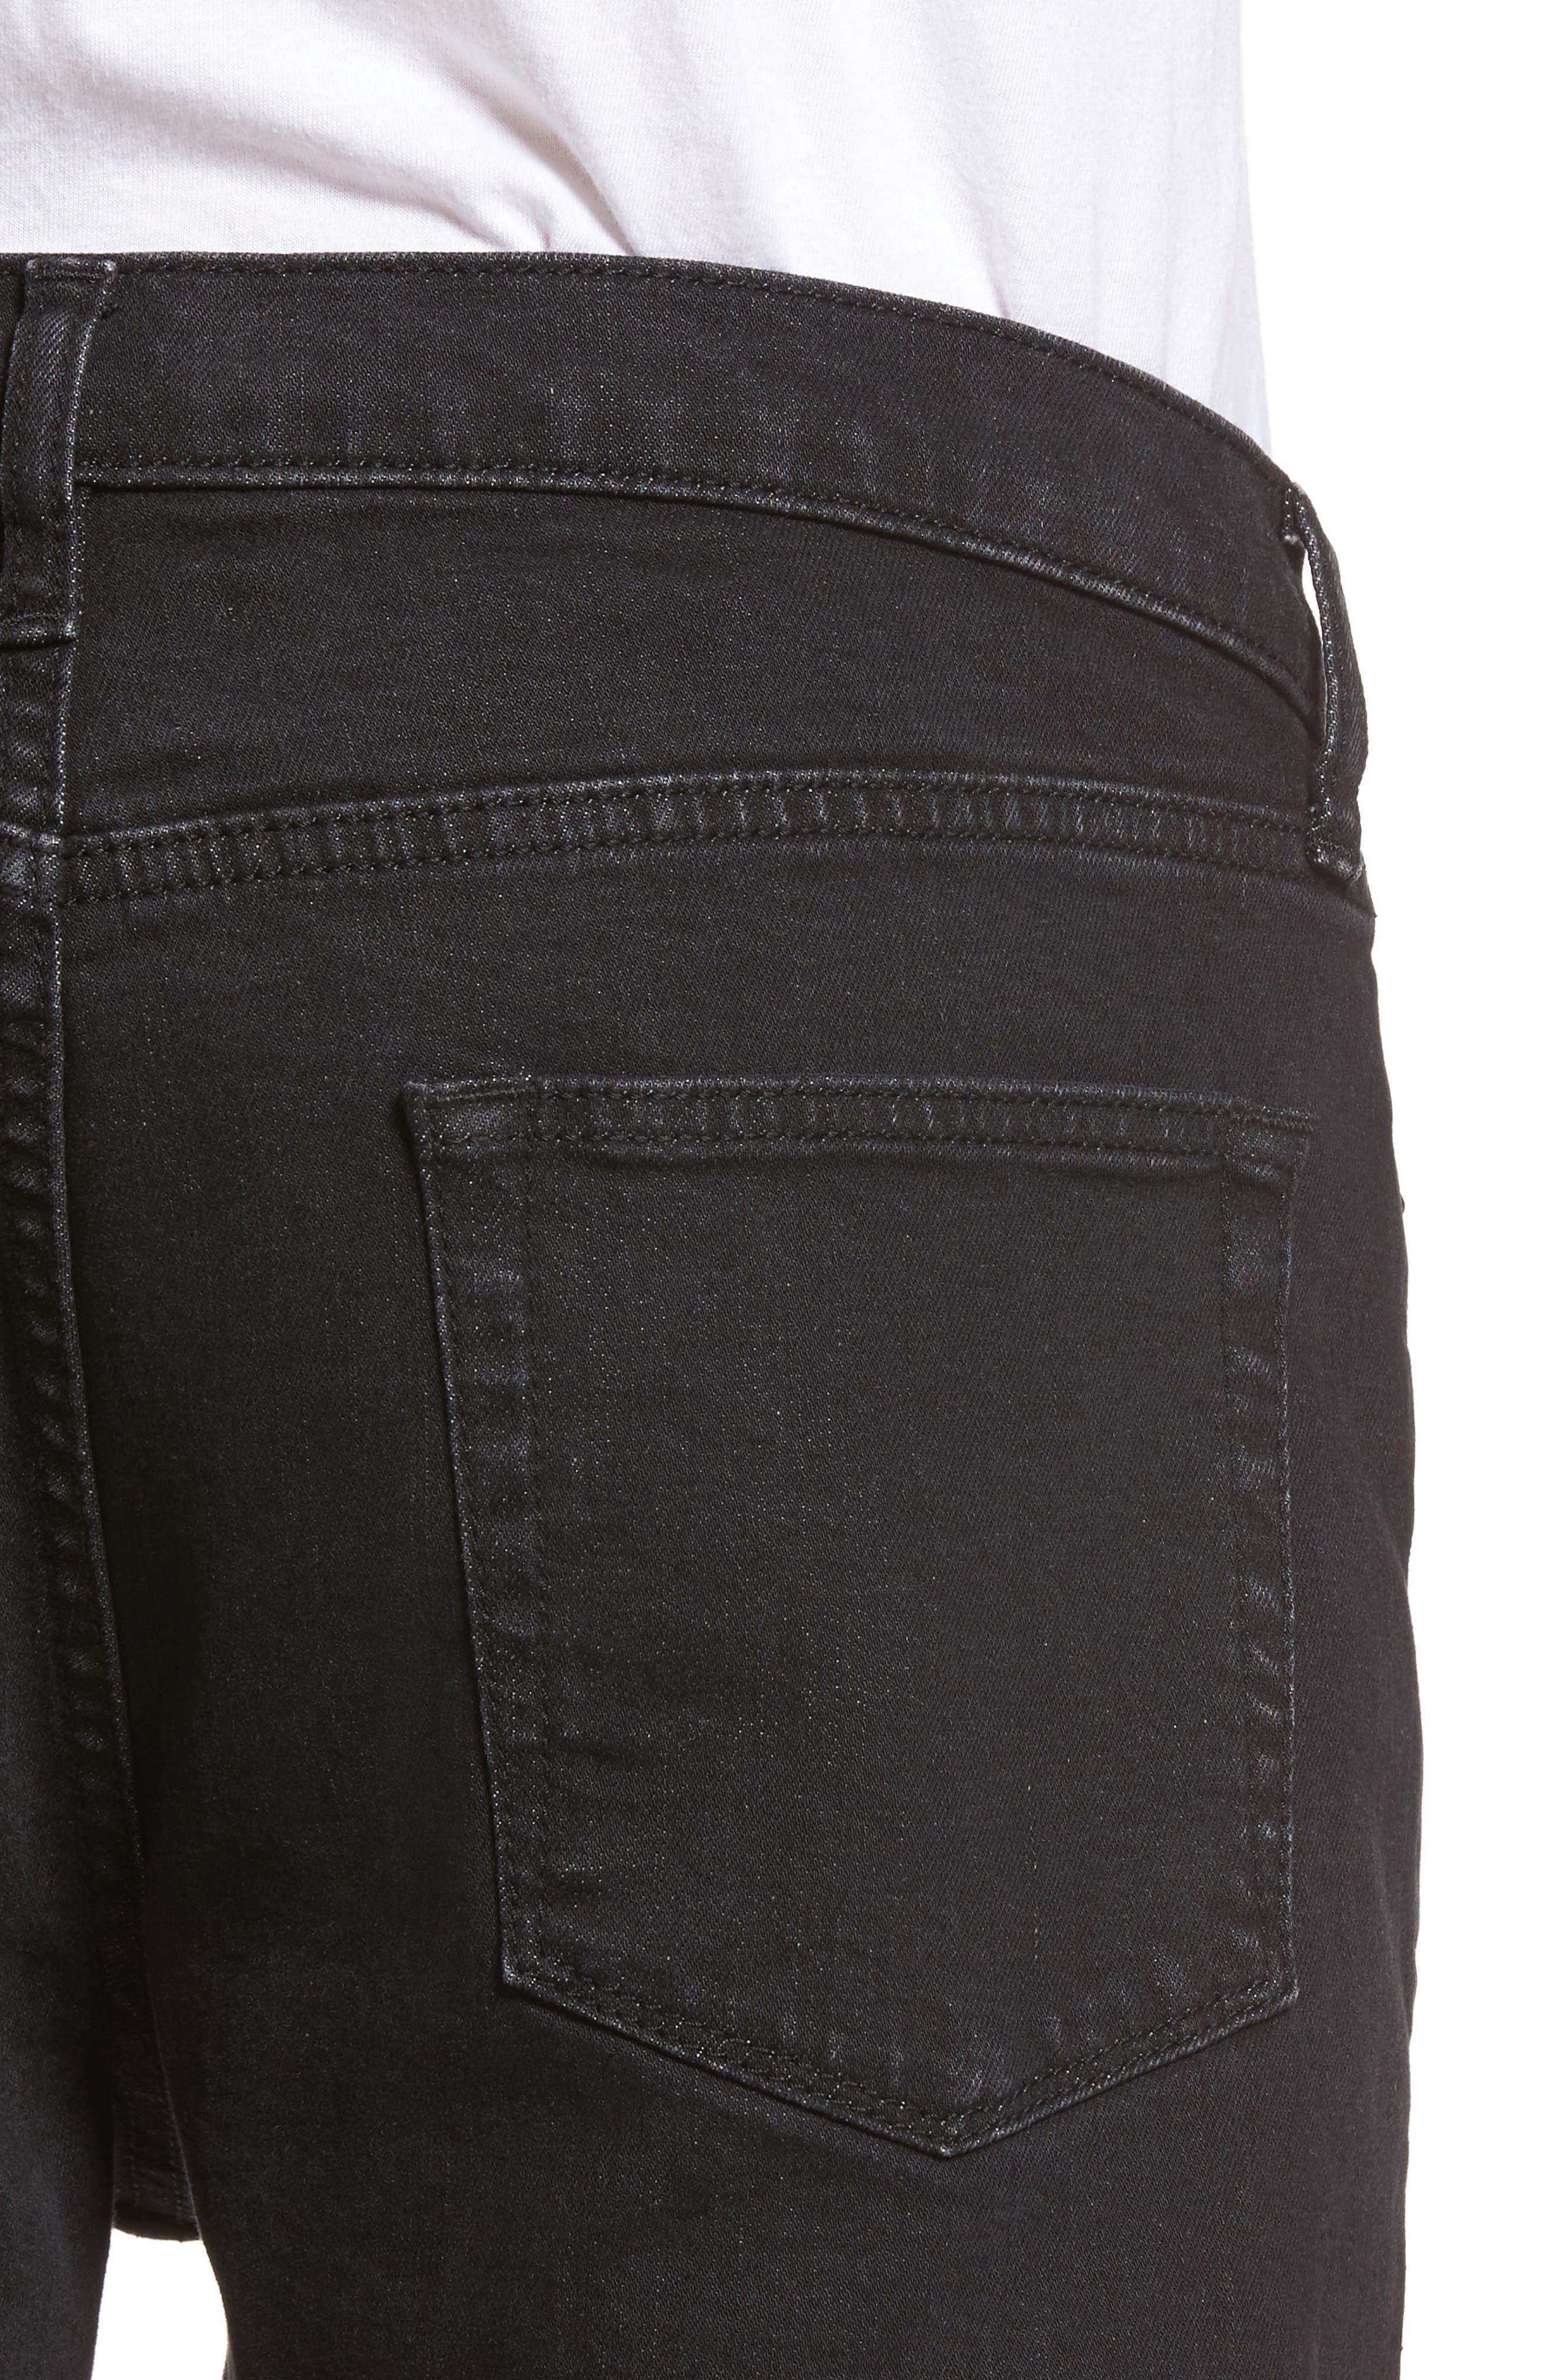 Washed Slim Fit Jeans,                             Alternate thumbnail 4, color,